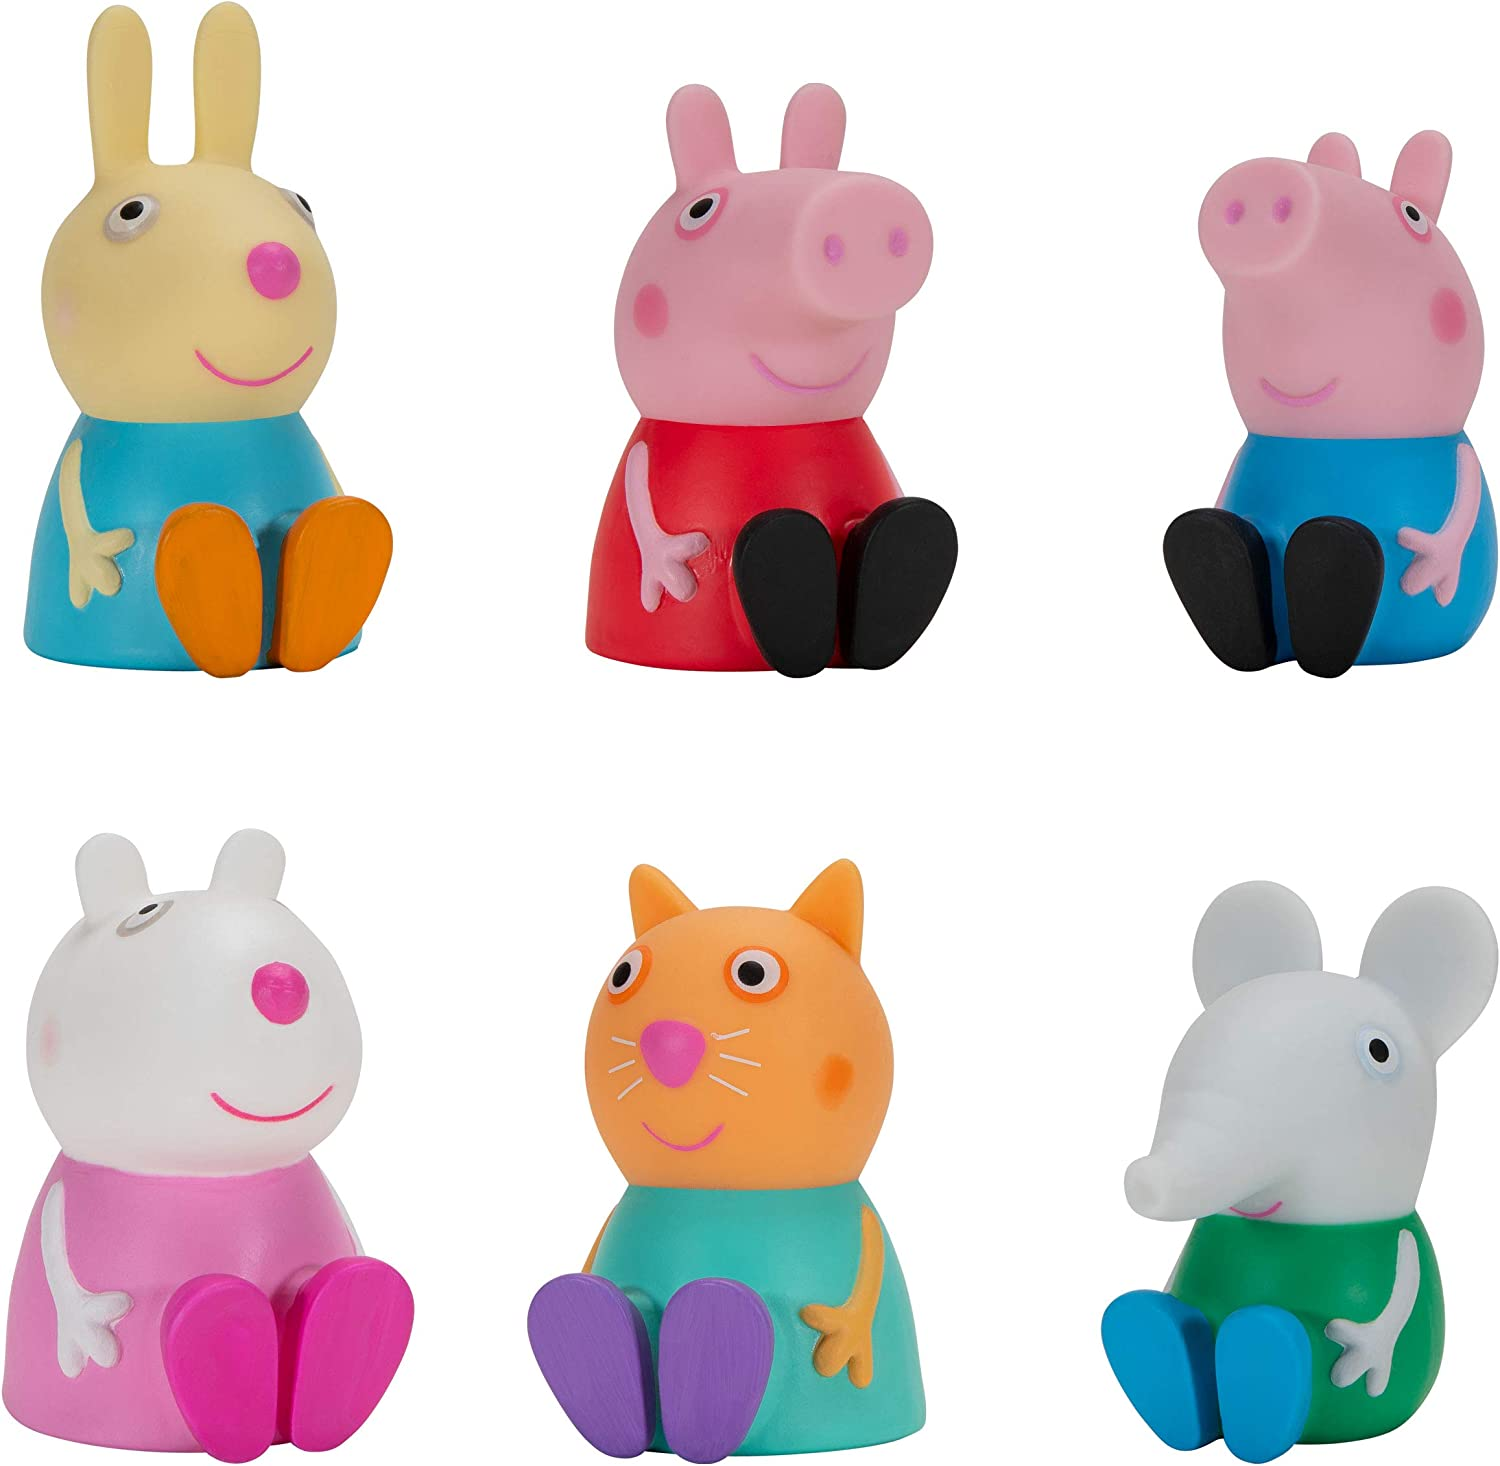 """Peppa Pig & Friends Squishies, 6 Pack, 2.5"""" Tall, Features 6 Character Toy Figures Like George, Suzy Sheep, Candy Cat, Edmond Elephant, Rebecca Rabbit – Toys for Preschoolers (PPZ0003)"""